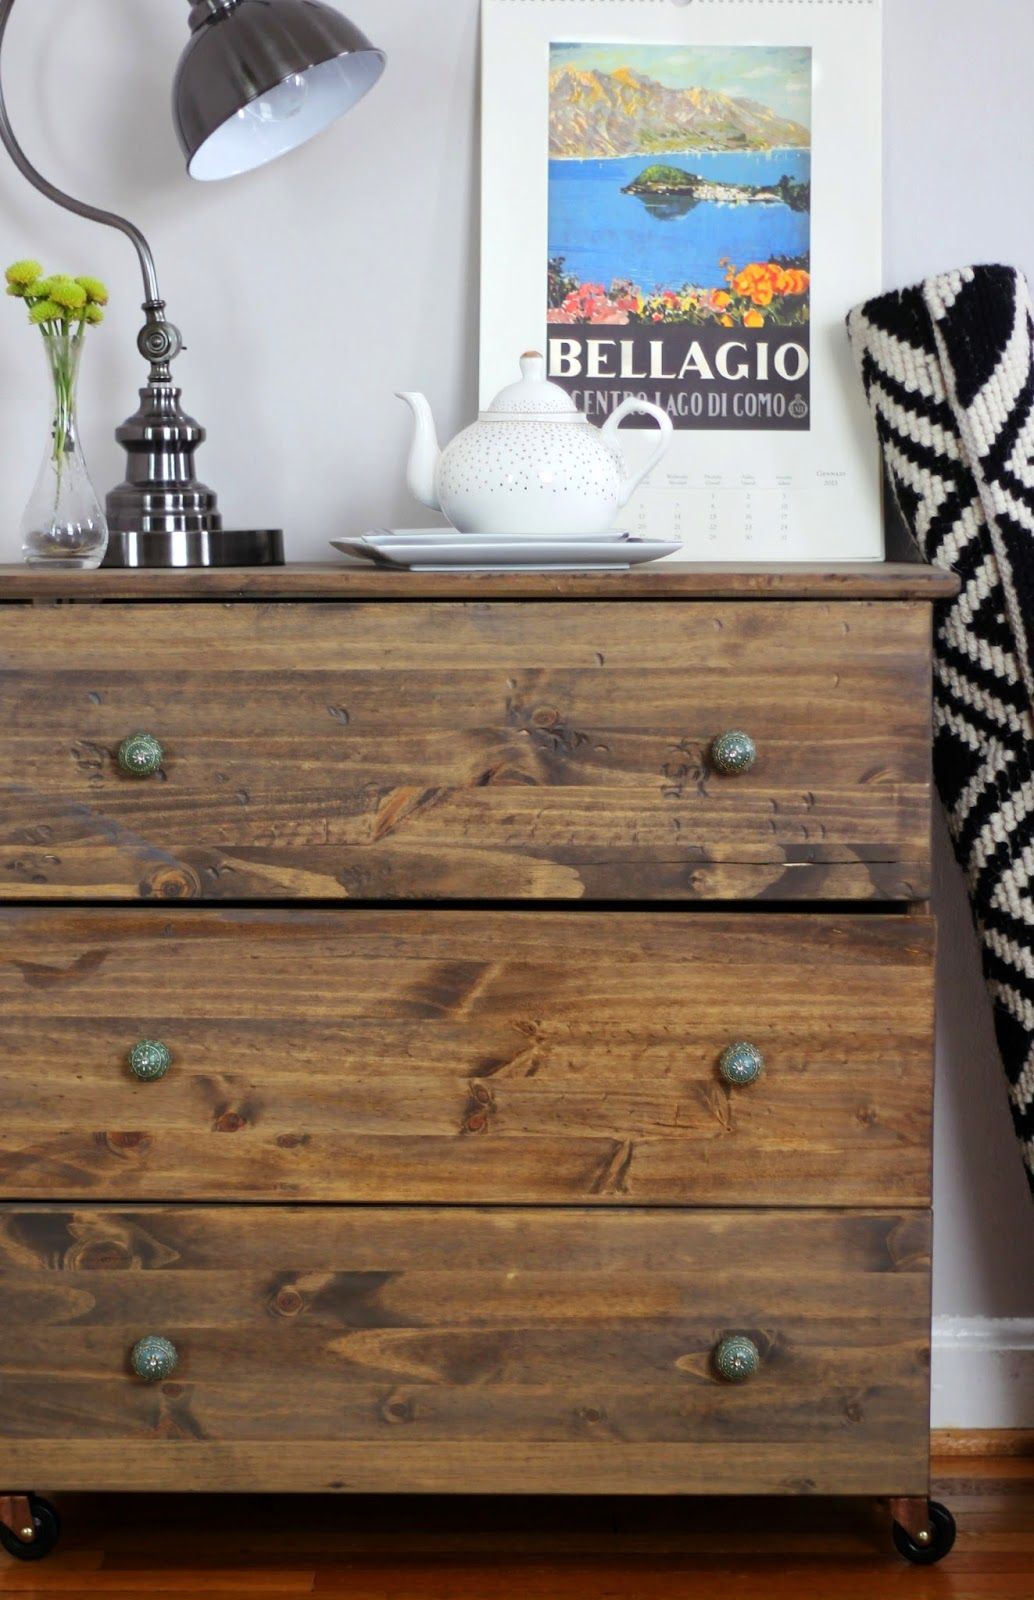 This is the Ikea tarva nightstand shown with paint and a